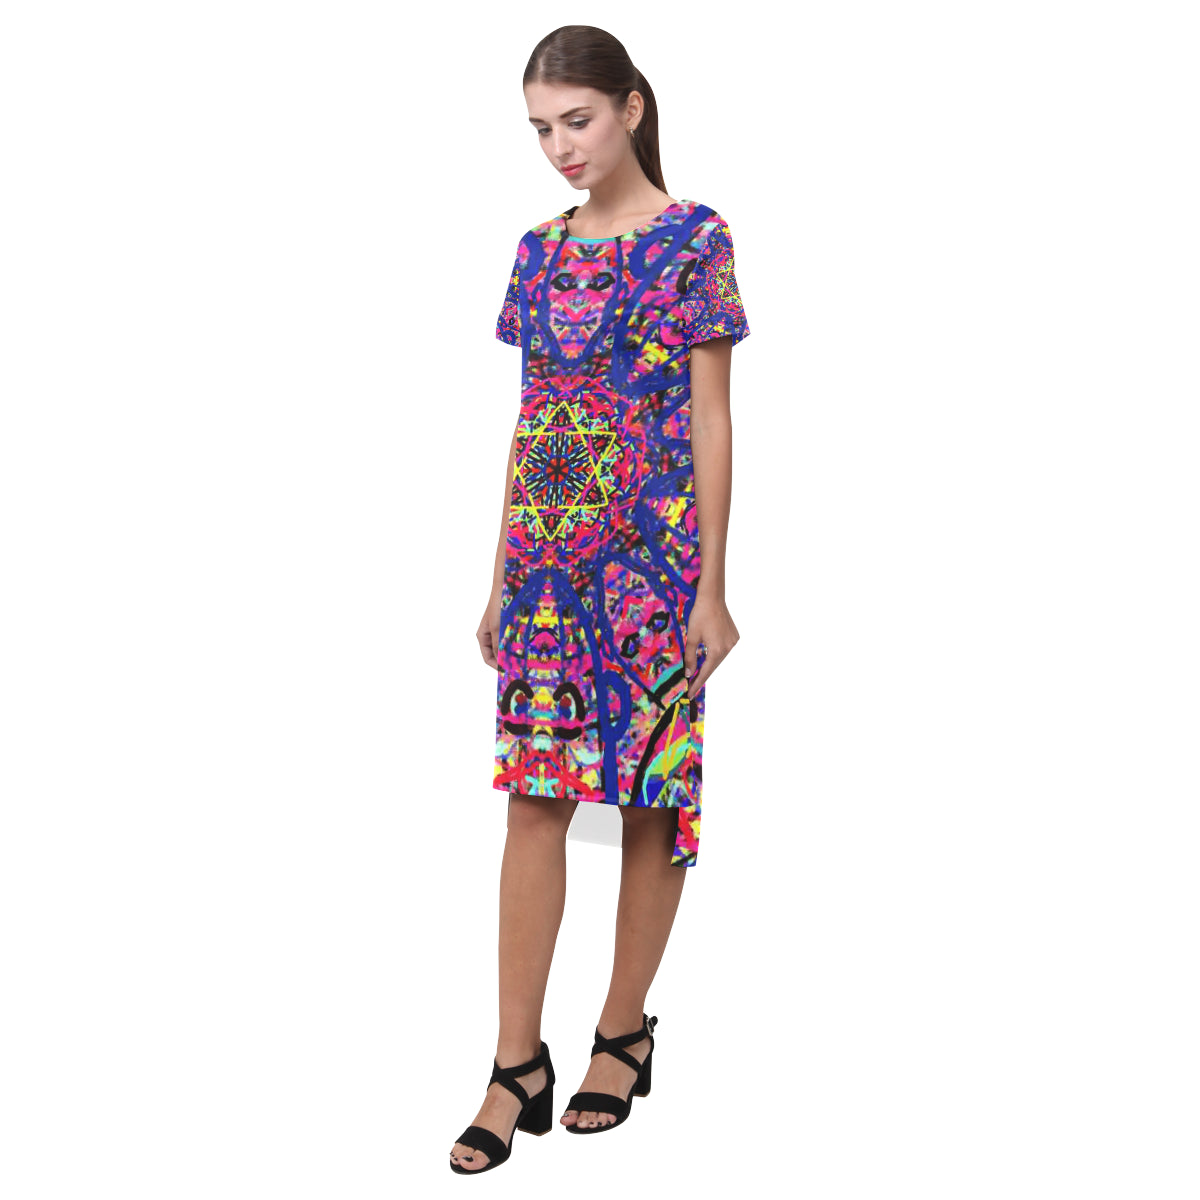 Thleudron Women's David Short Sleeves Casual Dress(Model D14) - Thleudron